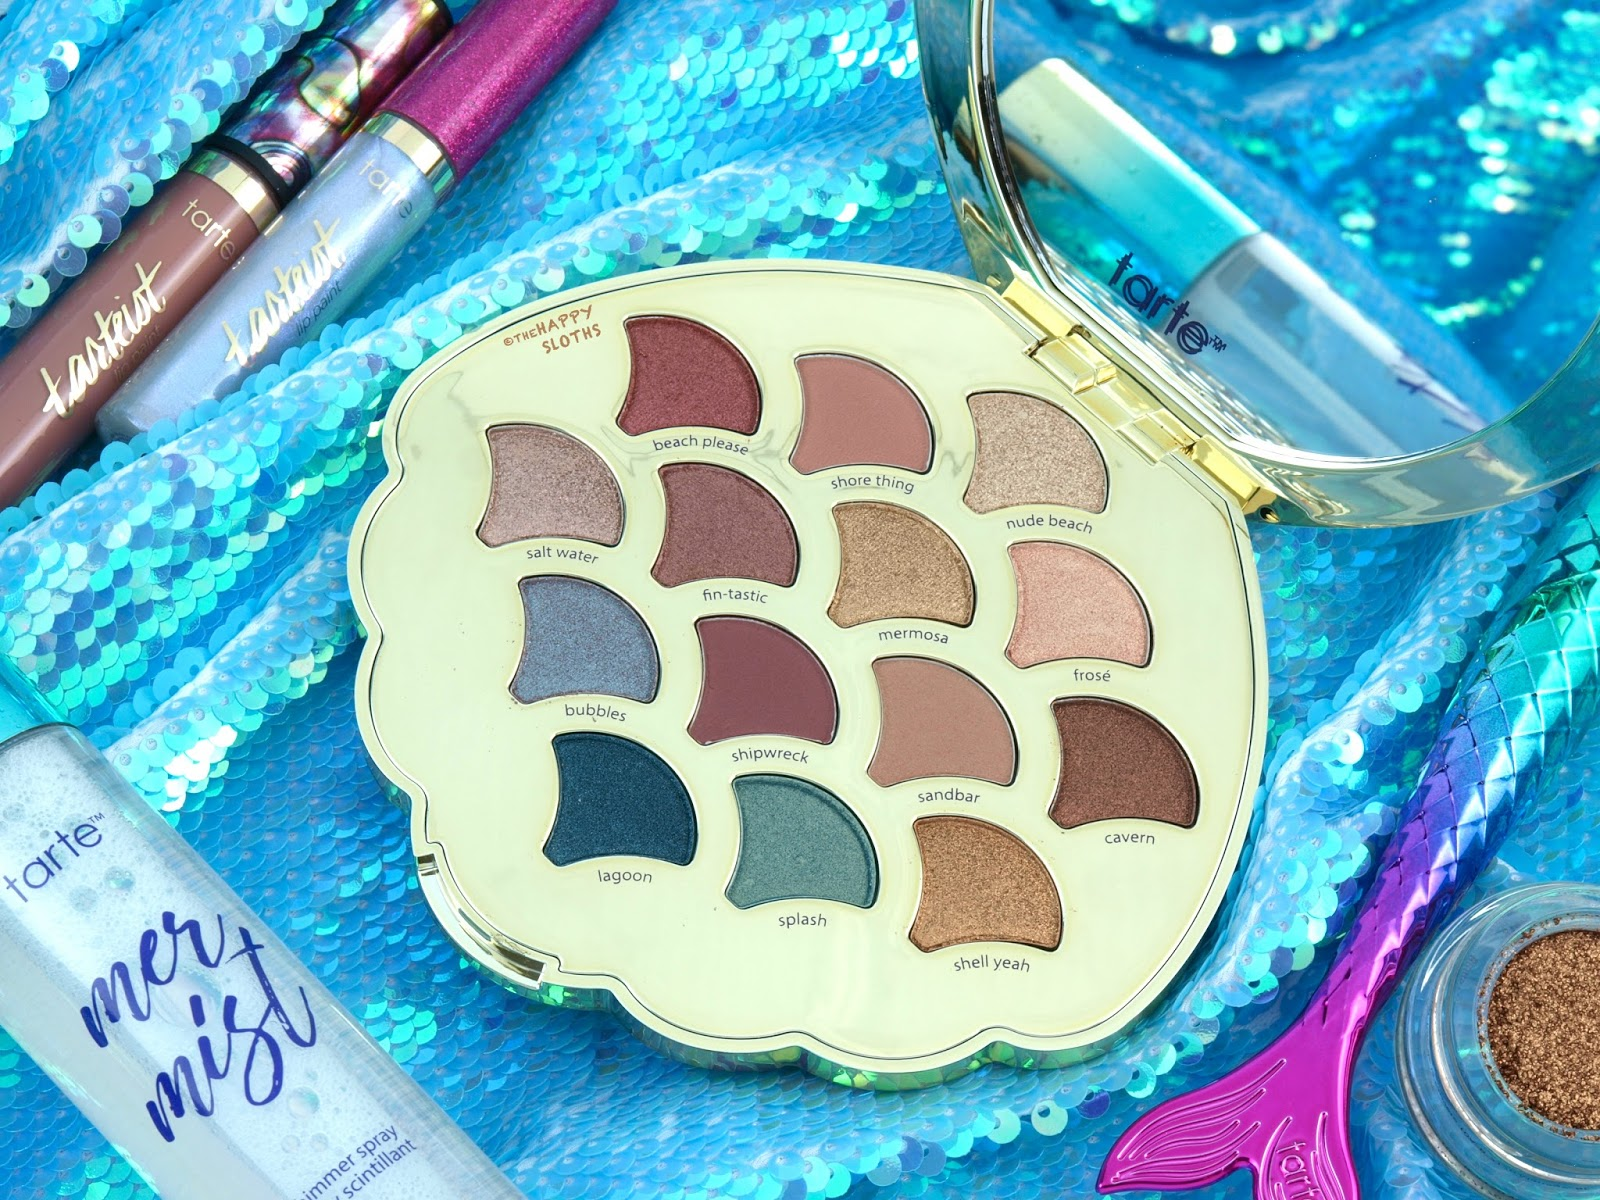 Tarte Mermaid Collection | Be A Mermaid & Make Waves Eyeshadow Palette: Review & Swatches